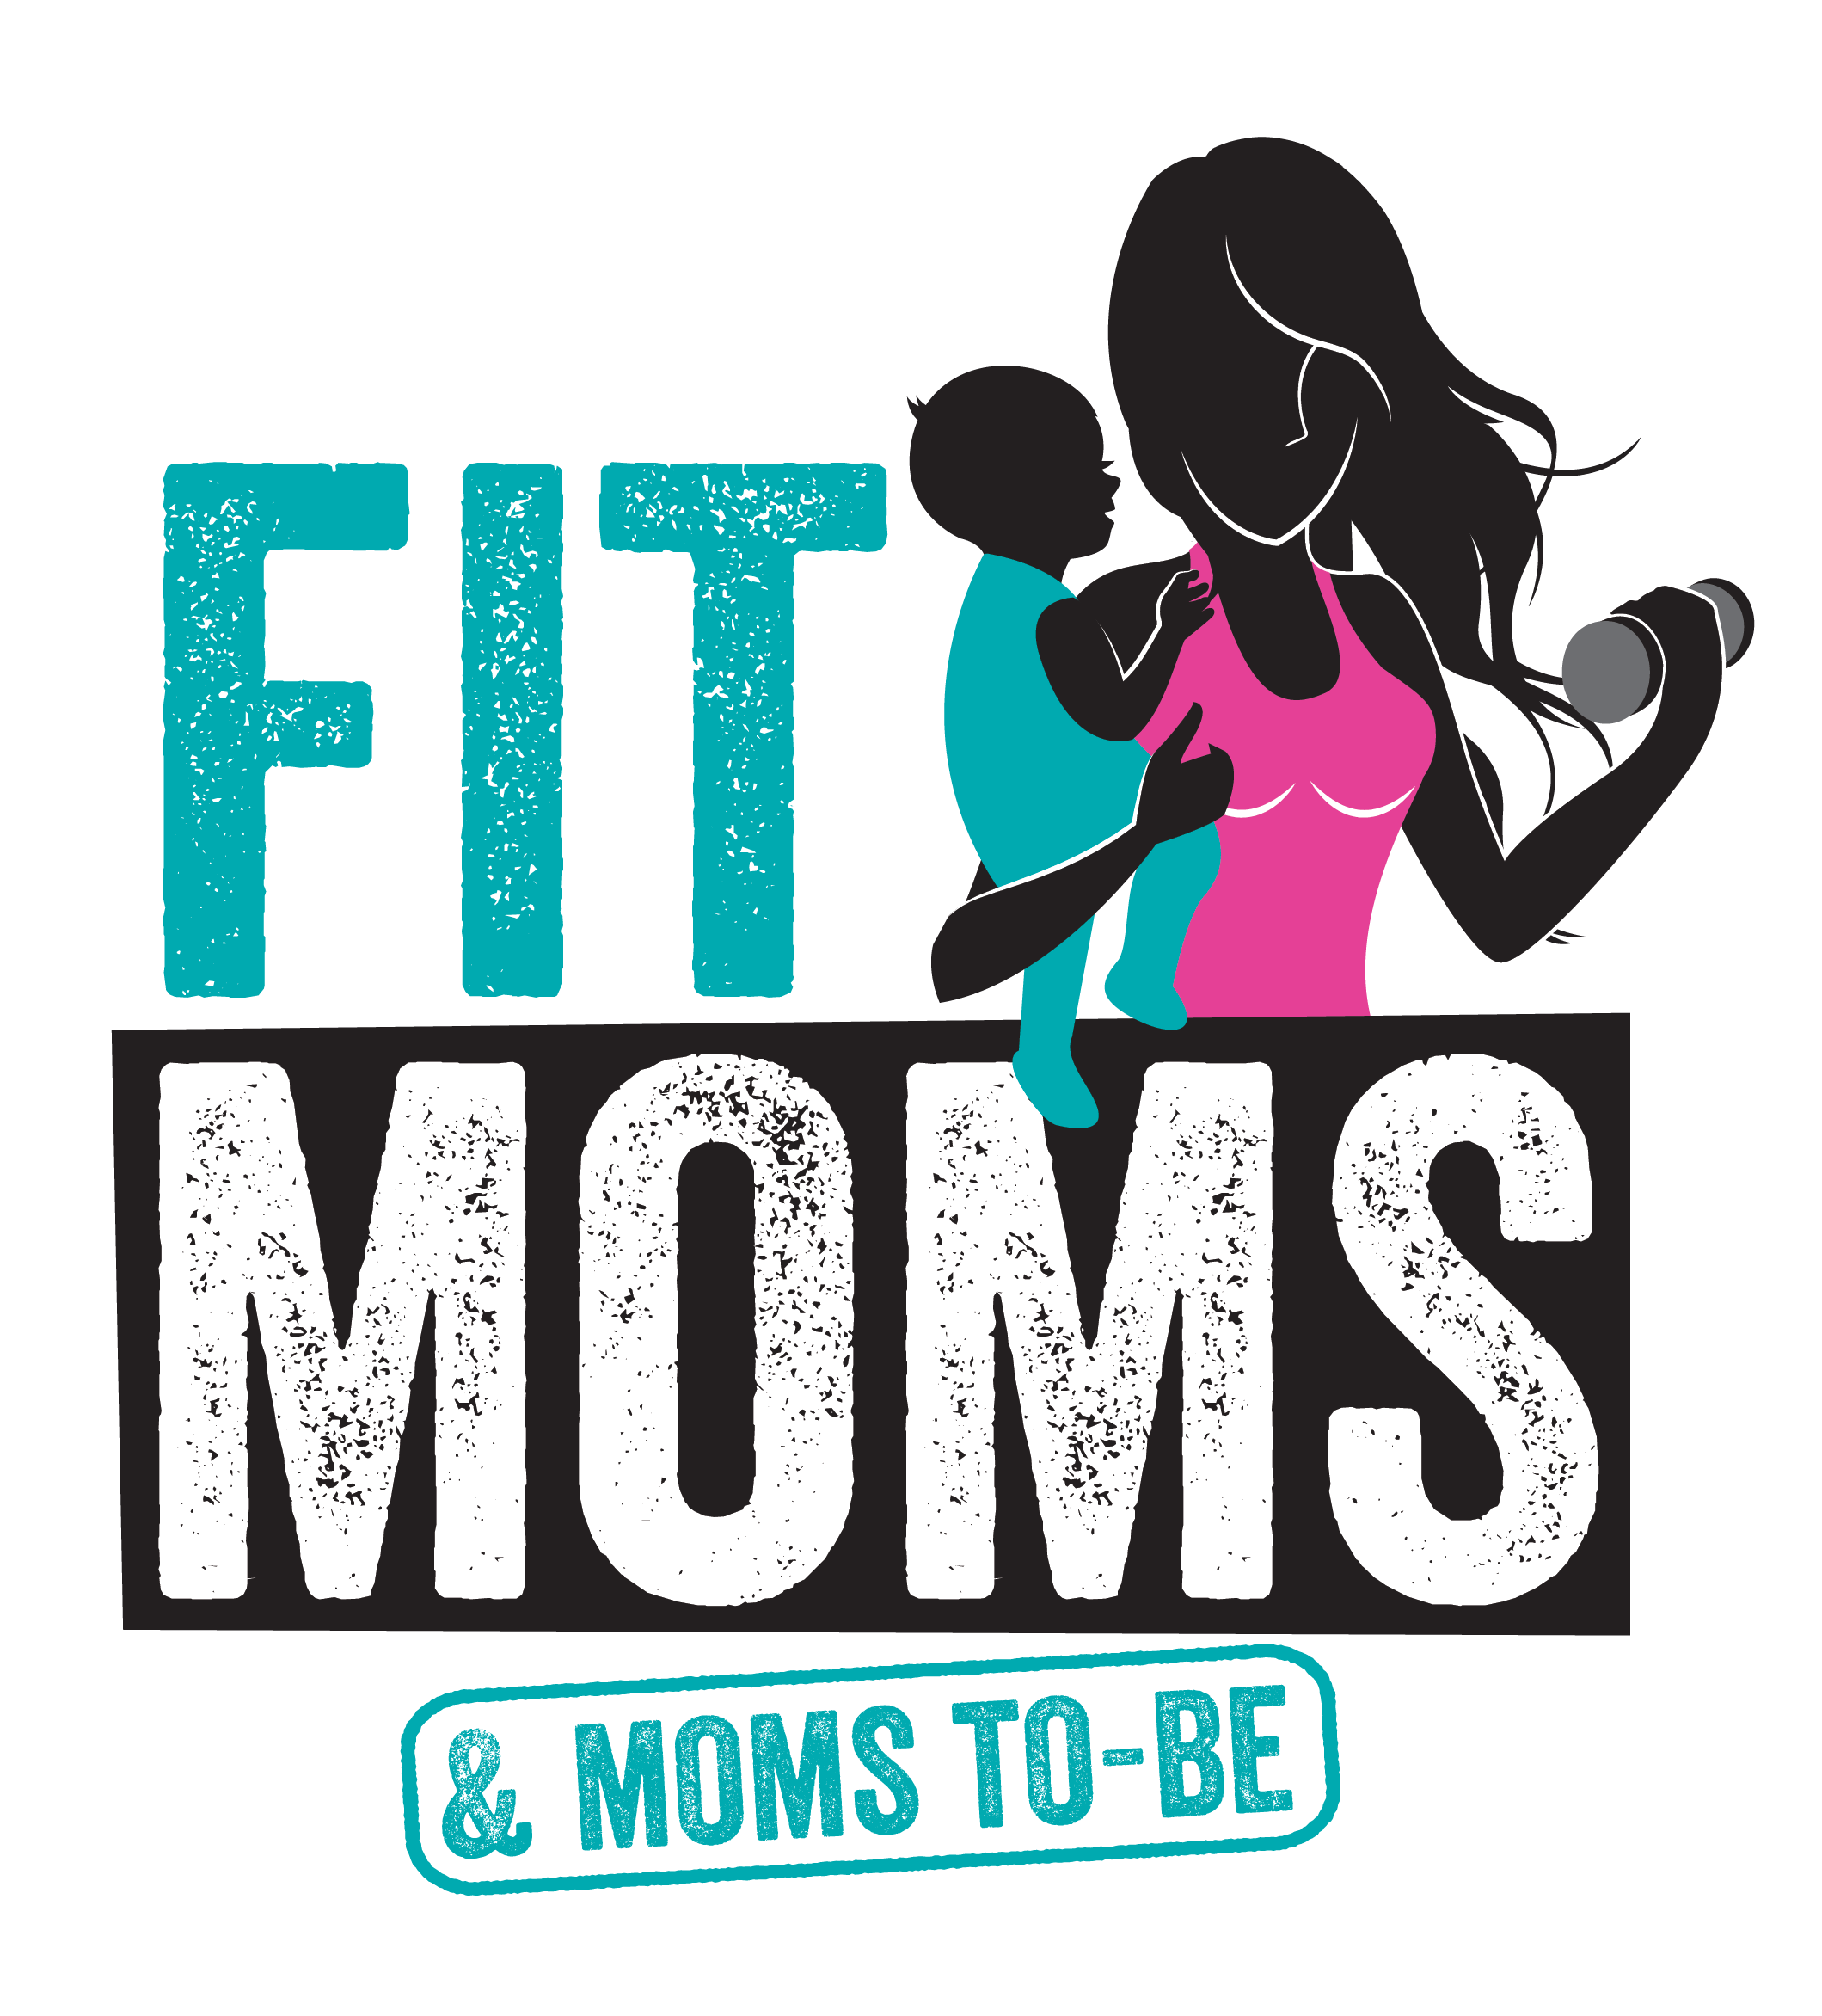 Fit mom clipart png black and white library Fit Moms & Moms-To-Be FUN RUN! - San Antonio, TX 2015 | ACTIVE png black and white library